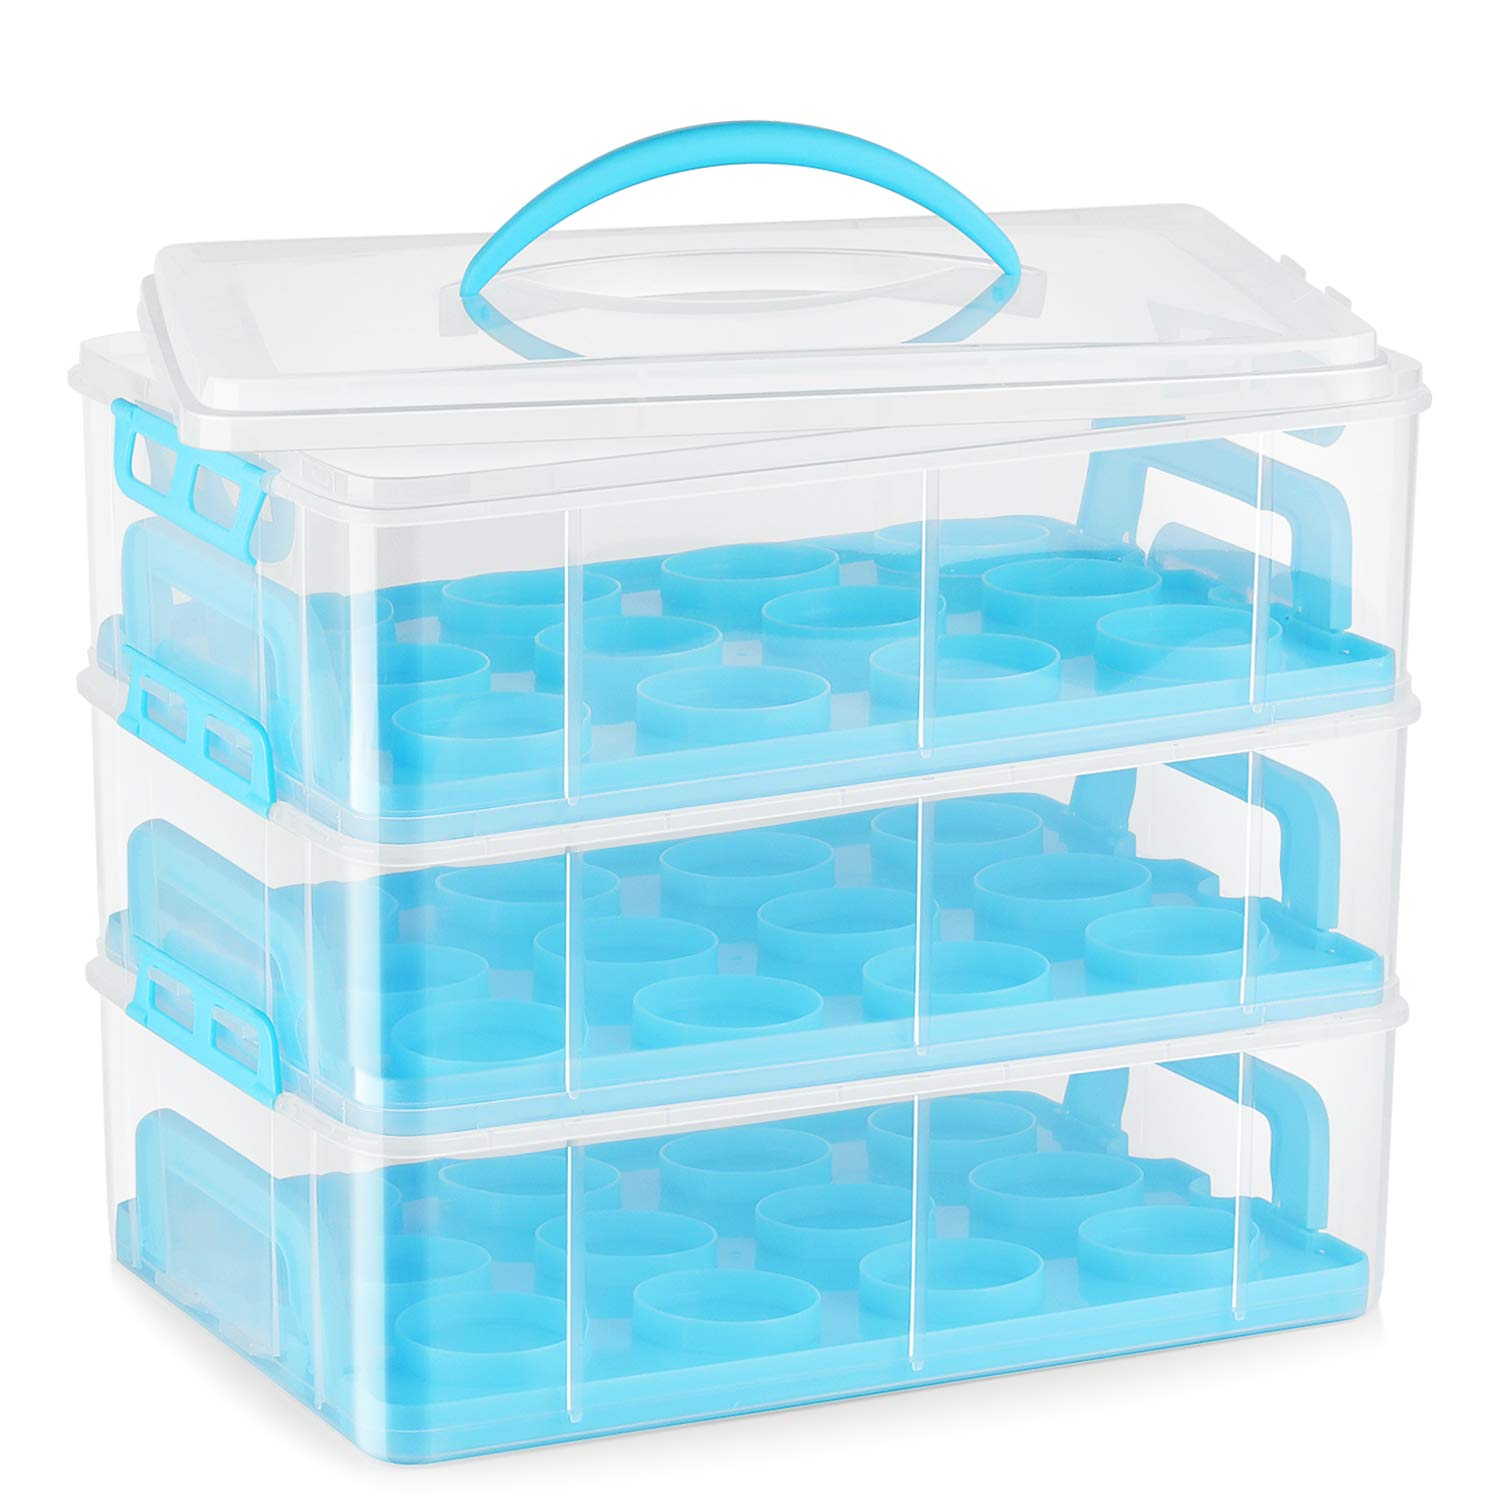 Flexzion Cupcake Carrier Holder Container Box (36 Slot, 3 Tier) - 36 Cupcakes Slot or 3 Large Cakes Pastry Clear Plastic Storage Basket Taker Courier with 3 Tier Stackable Layer Insert (Blue) by Flexzion